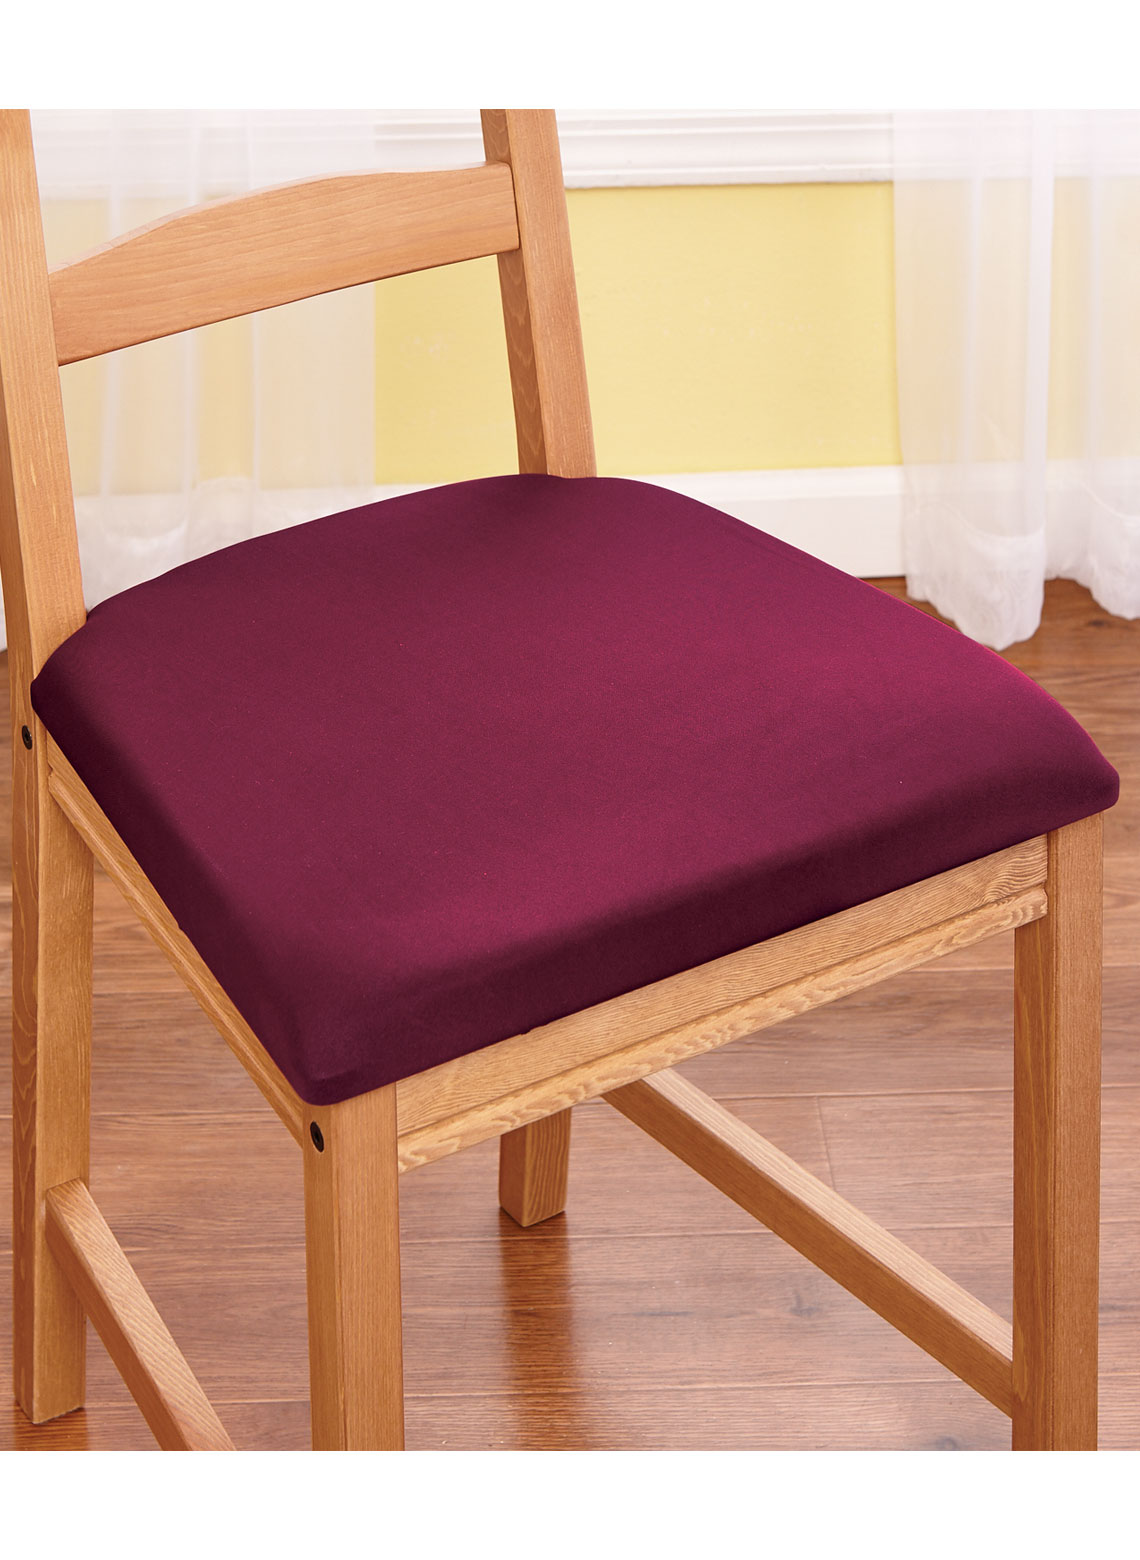 chair covers | carolwrightgifts